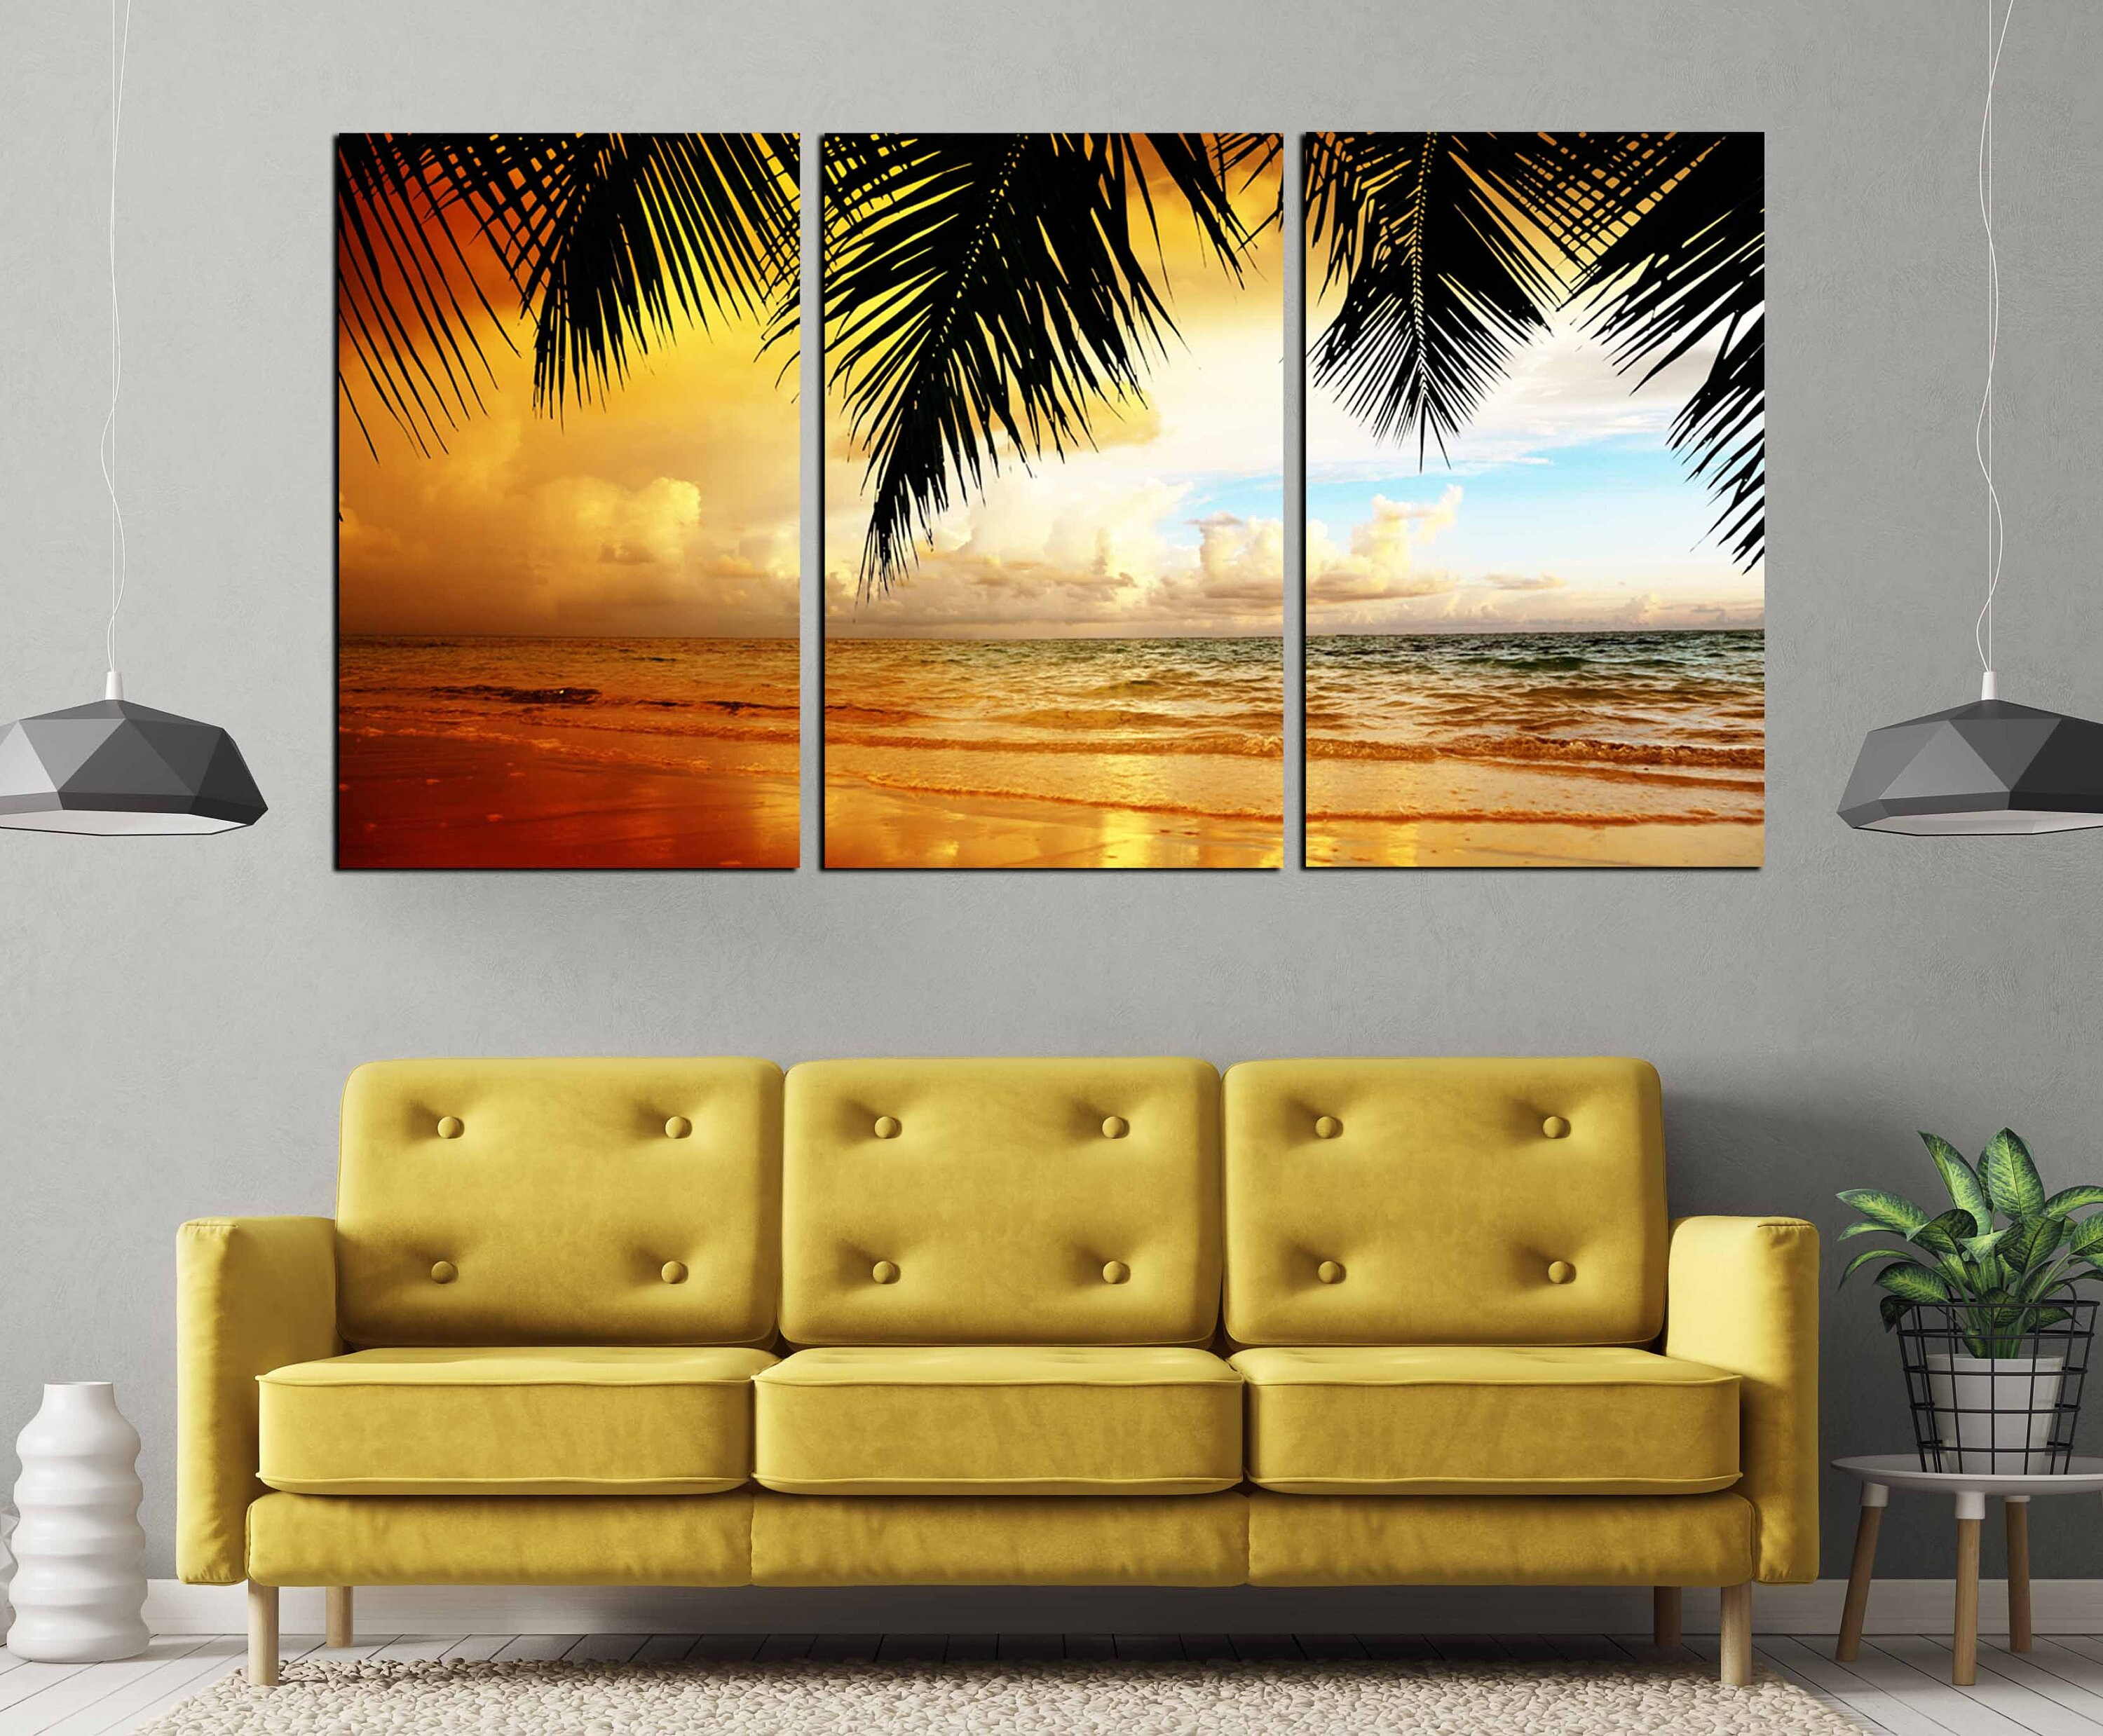 Large Canvas Prints For Living Room Sunset Wall Art Beach Canvas Print Beach Art Print Large